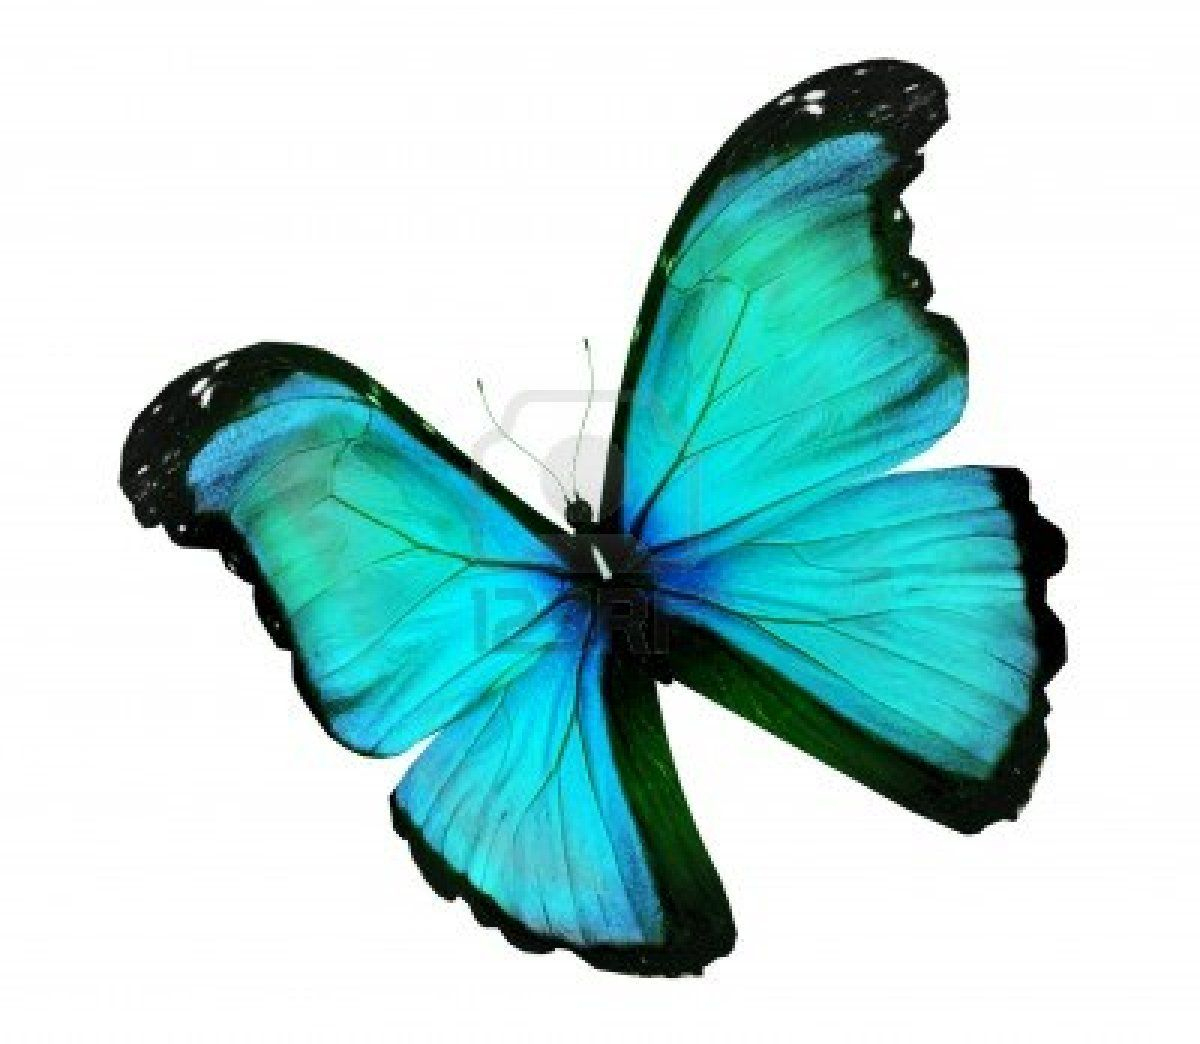 Stock Photo | Butterfly, Color, Turquoise Color destiné Dessin De Papillon En Couleur